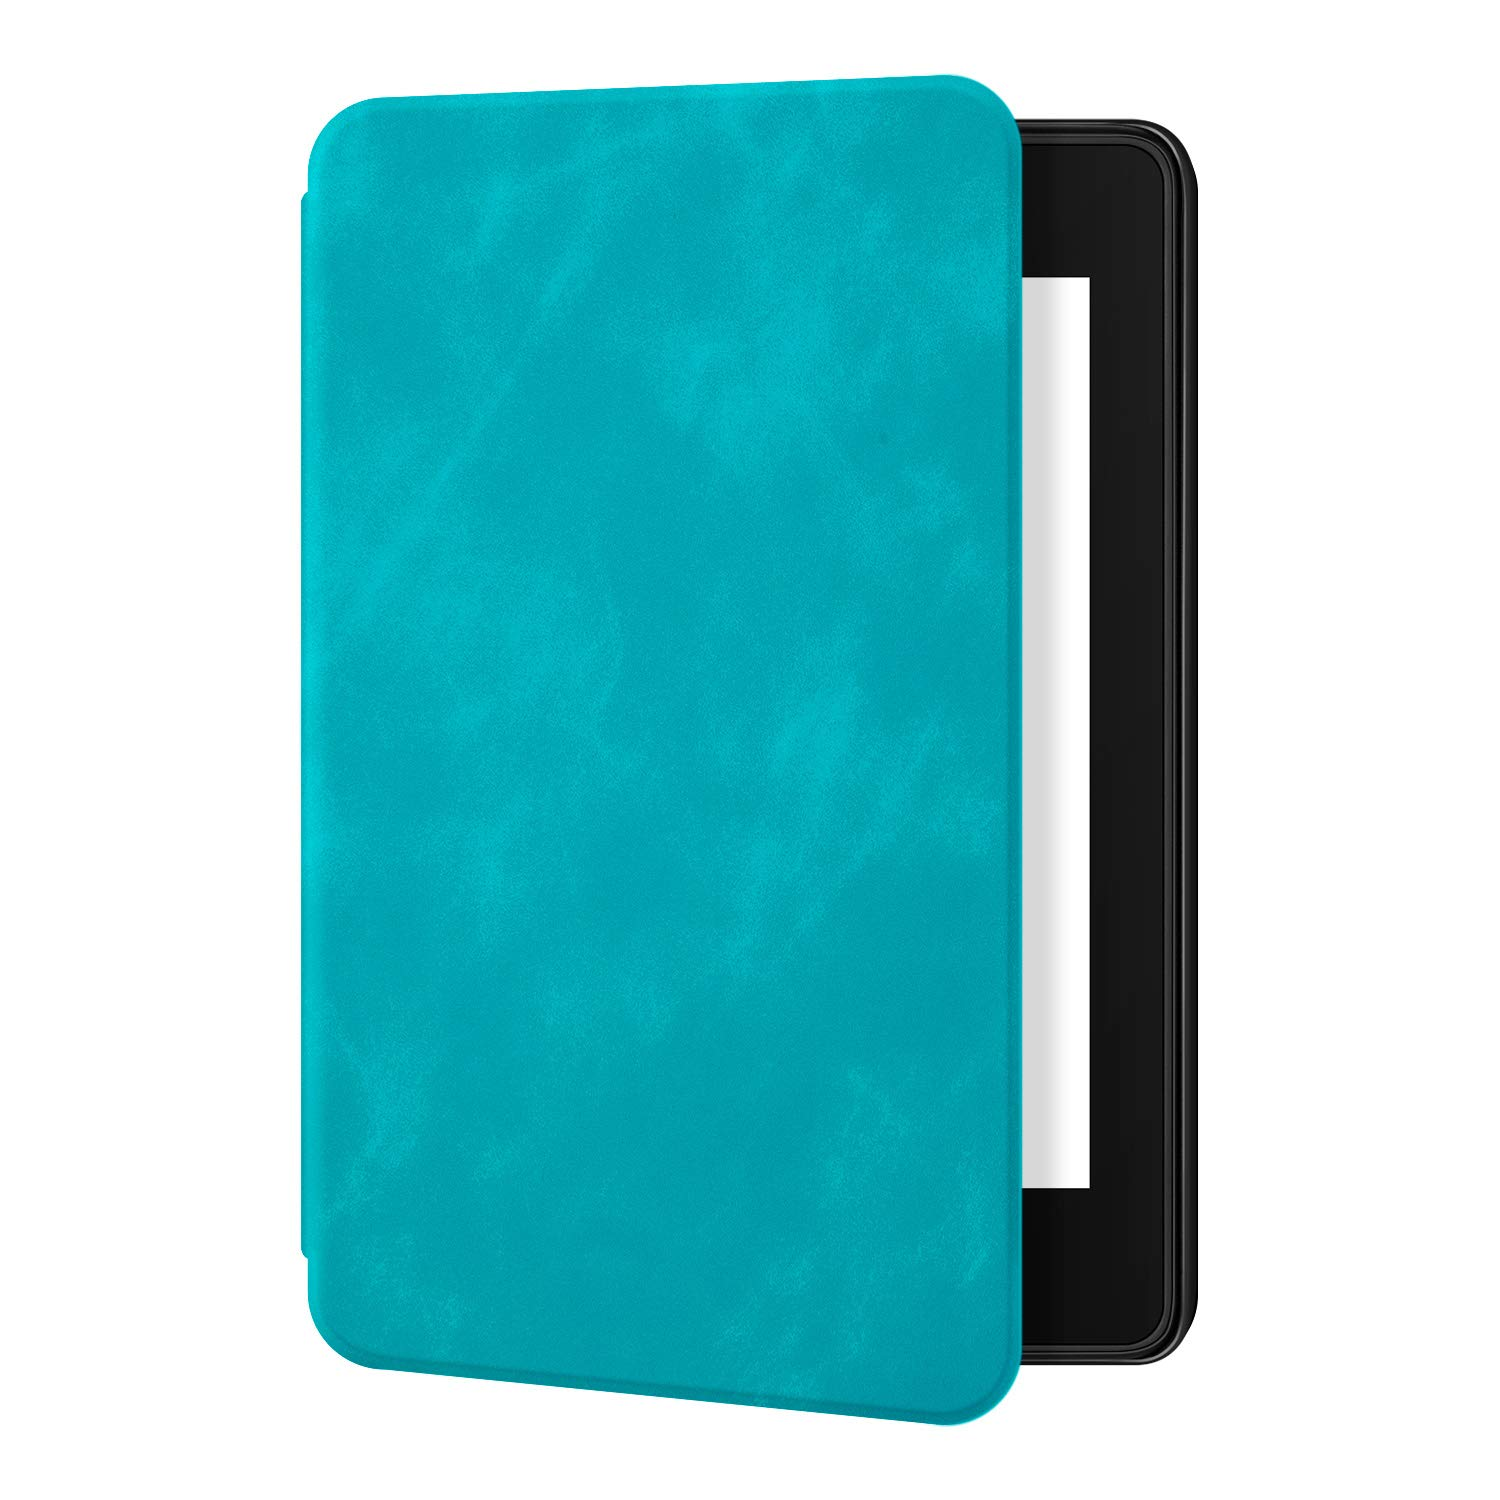 Ayotu Skin Touch Feeling Case for Kindle Paperwhite 2018-Durable Soft Artificial Leather Cover with Auto Wake/Sleep-Fits Amazon The Latest Kindle Paperwhite Case (10th Generation-2018),K10 Sky Blue